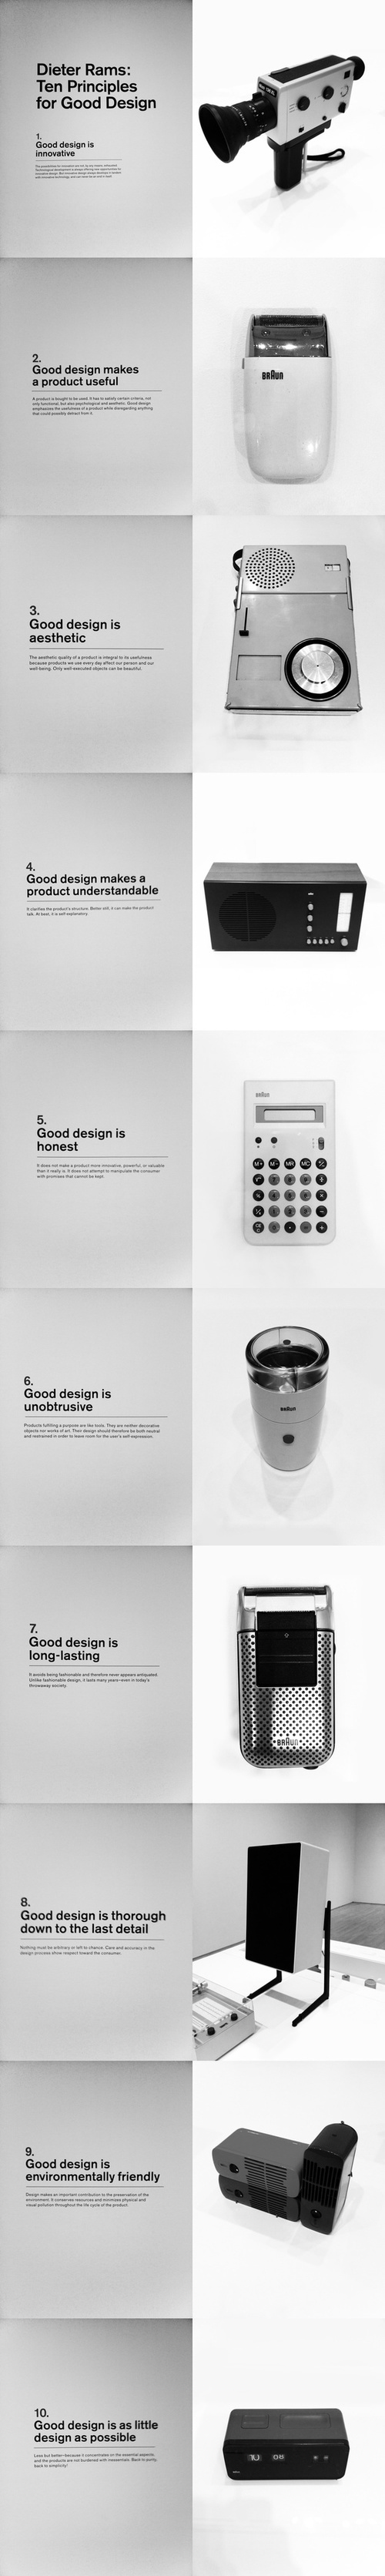 10 principles for good design.jpg